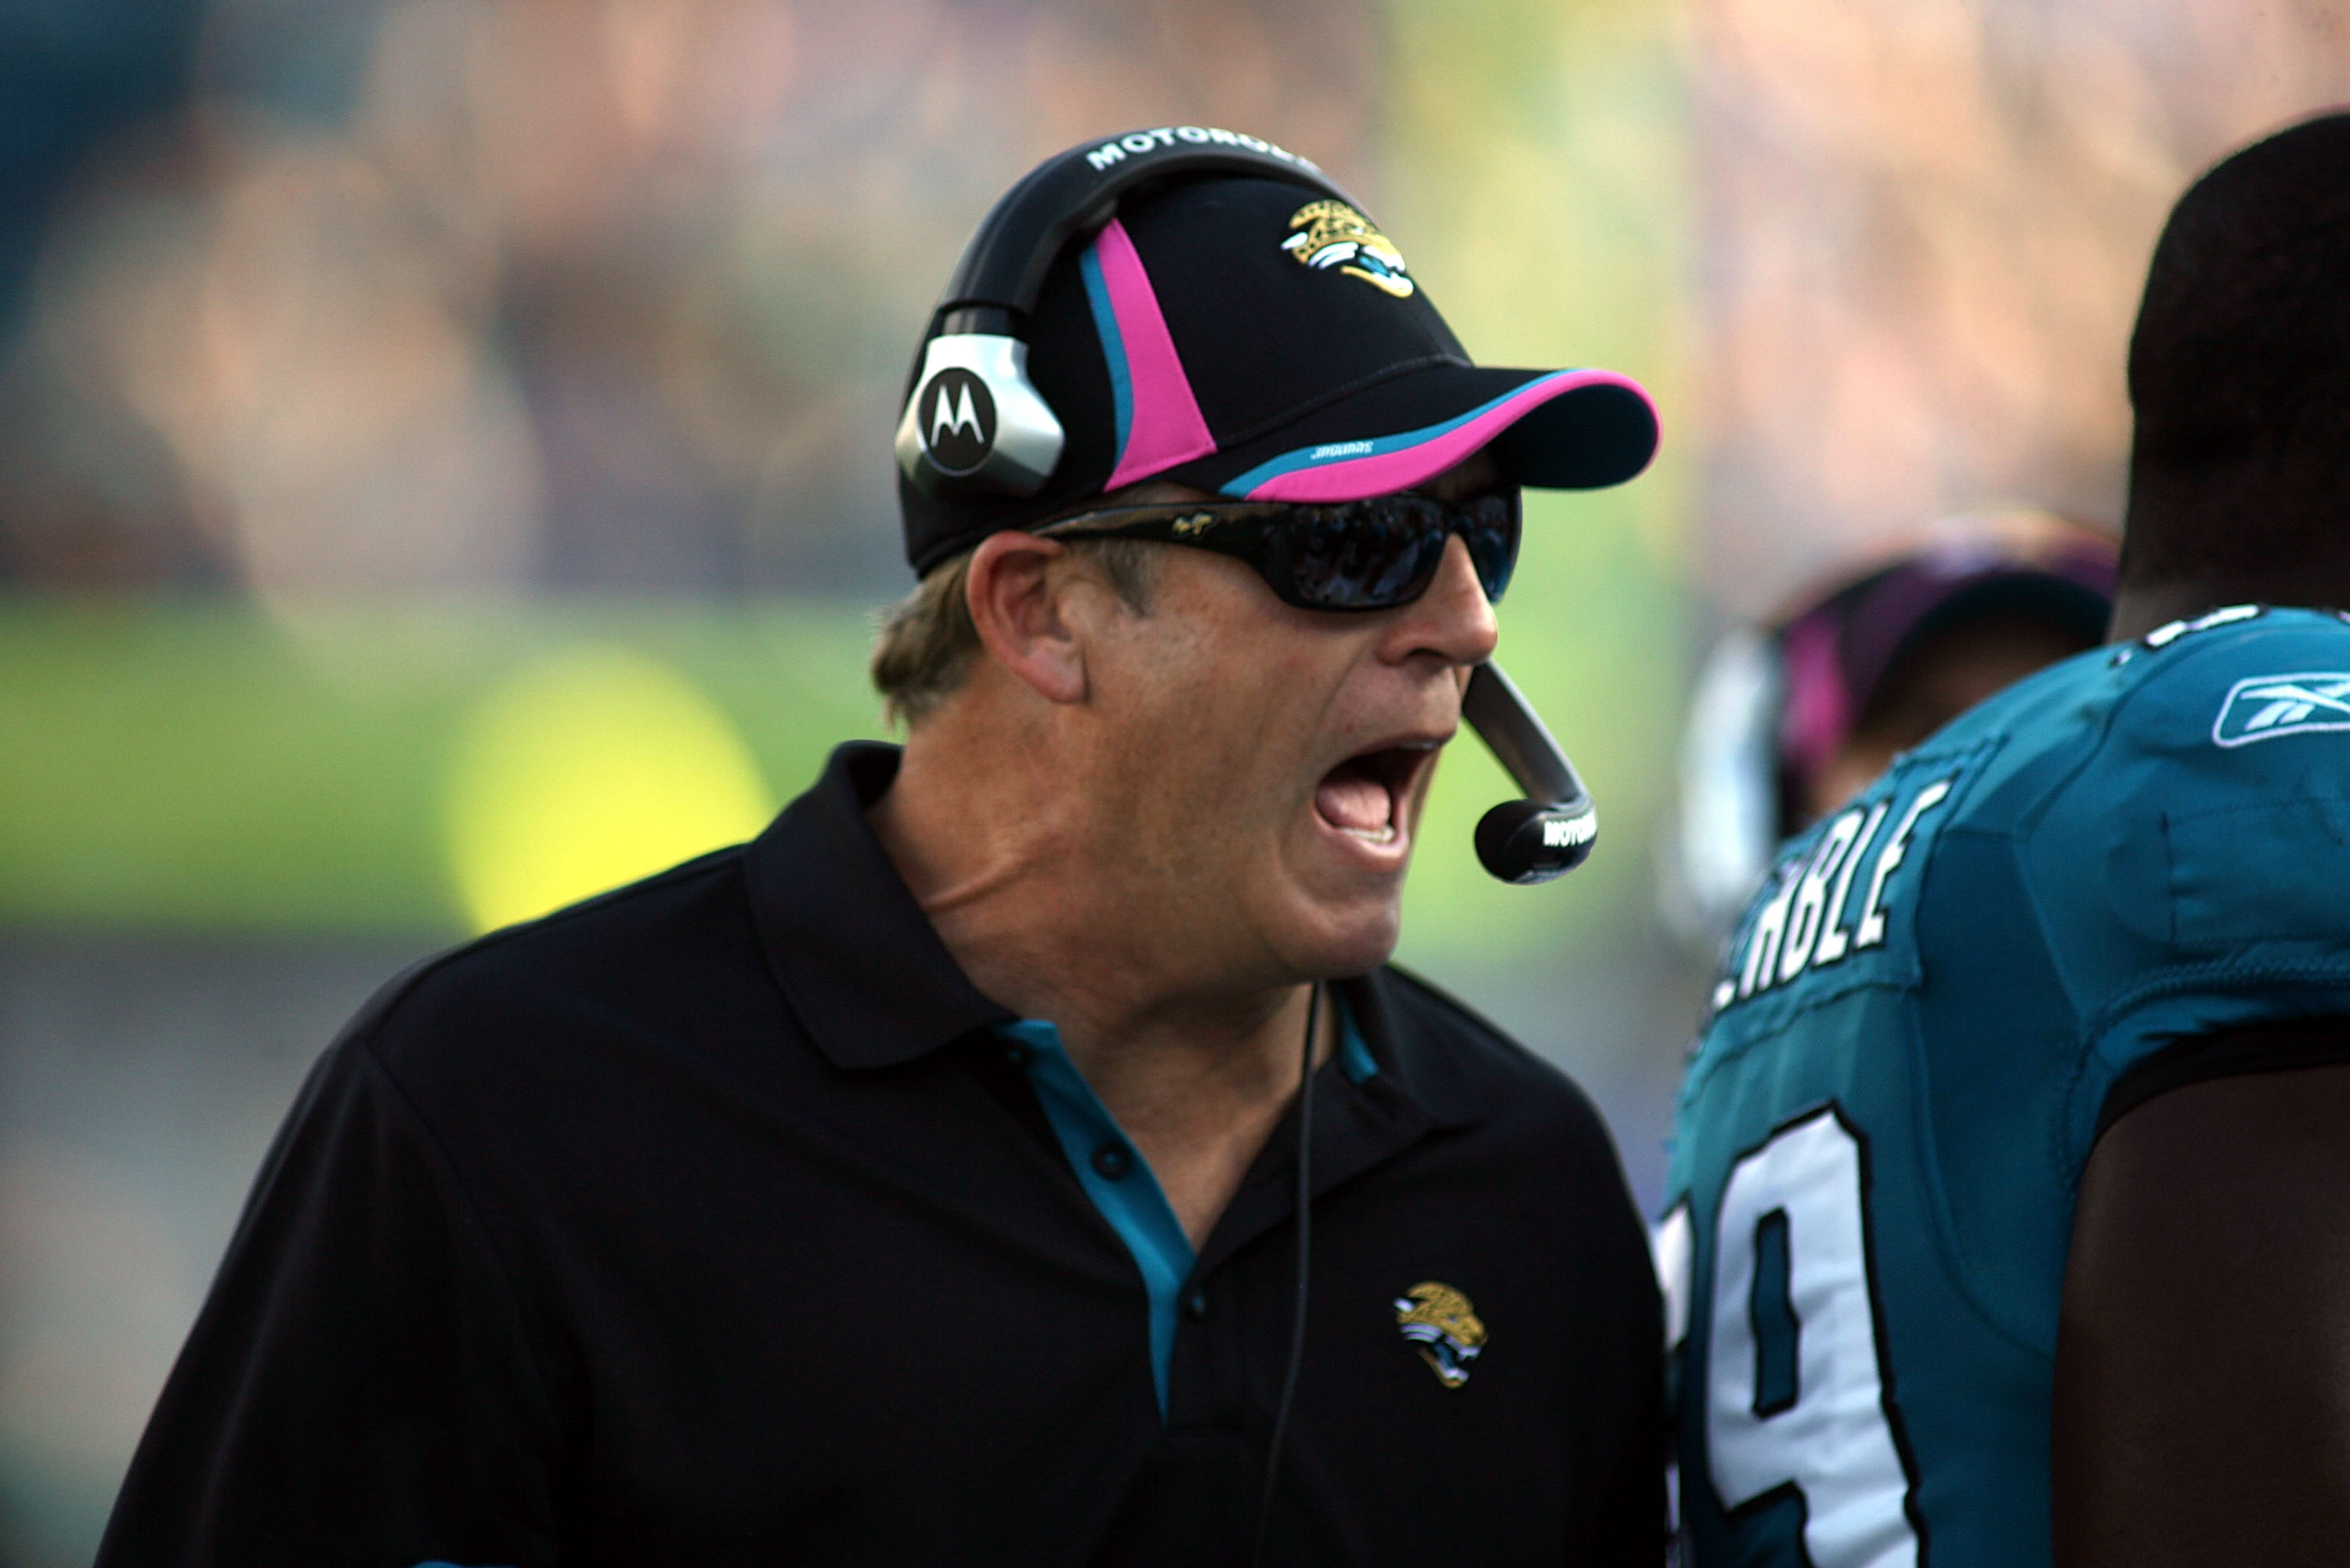 JACKSONVILLE, FL - OCTOBER 03:  Head coach Jack Del Rioof the Jacksonville Jaguars shouts against the Indianapolis Colts at EverBank Field on October 3, 2010 in Jacksonville, Florida. The Jaguars won 31-28.  (Photo by Marc Serota/Getty Images)